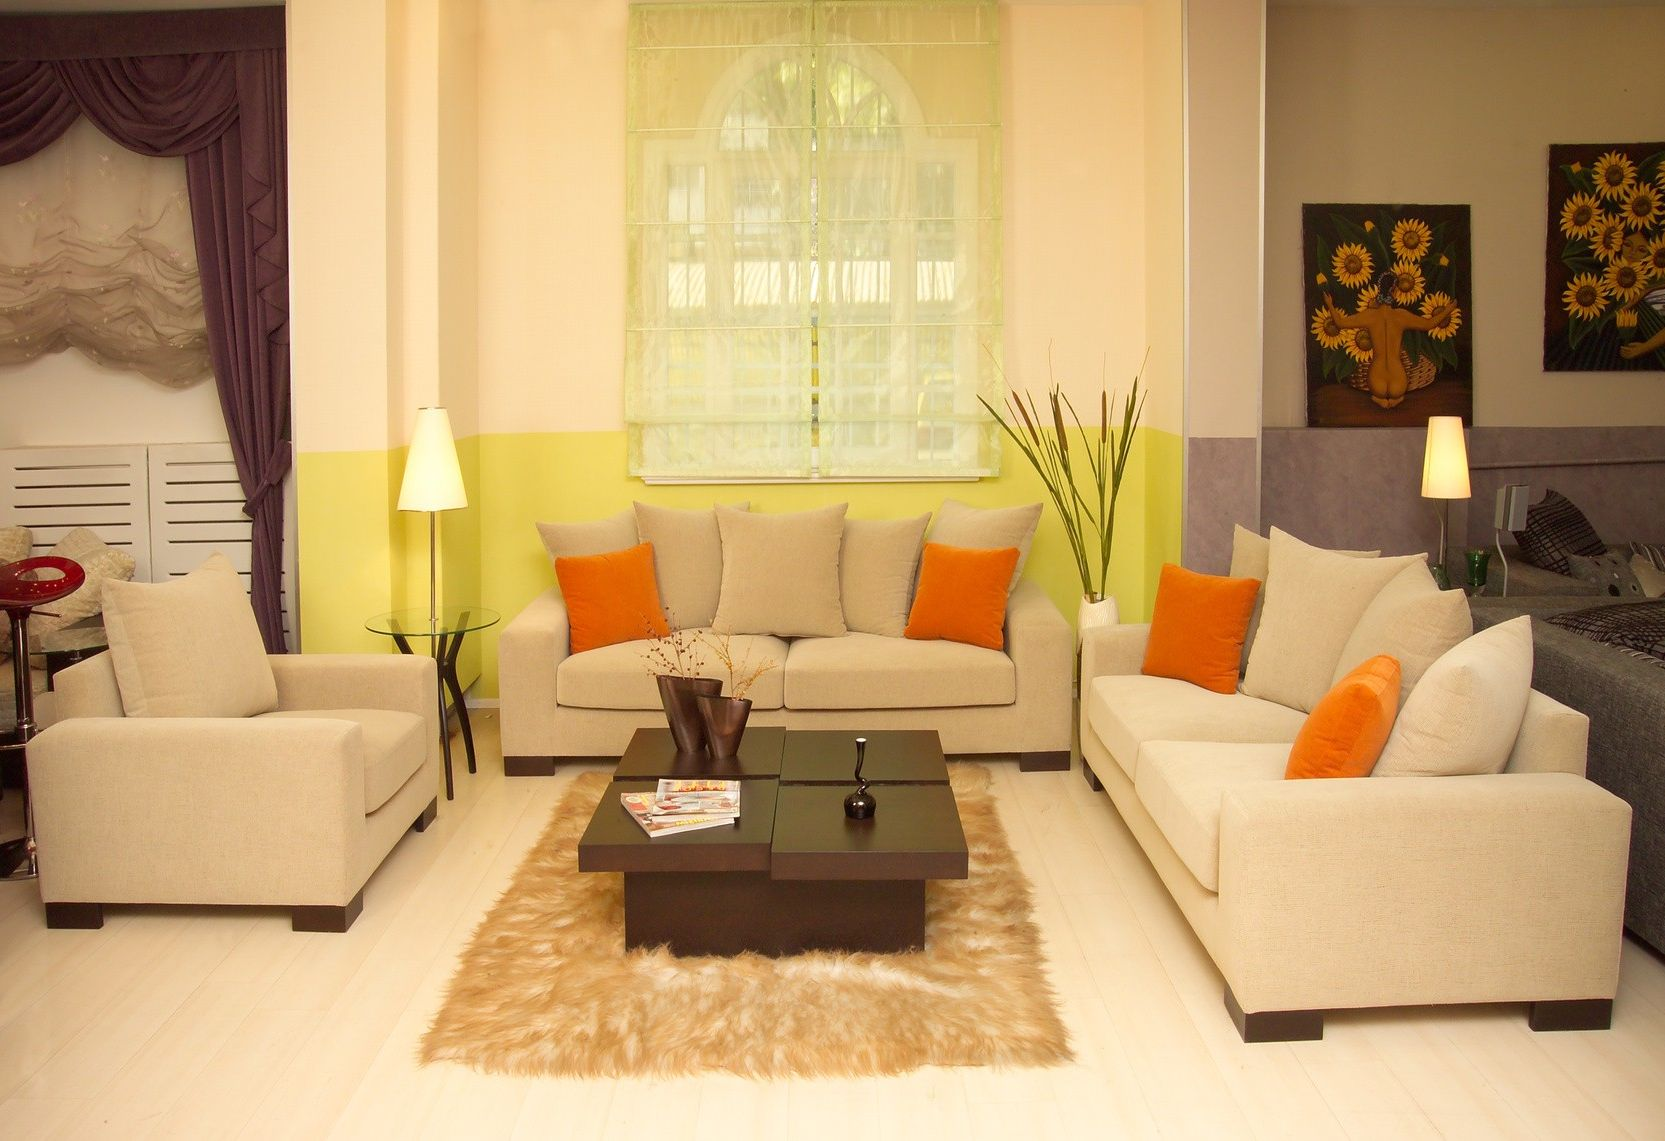 Alluring-Window-for-Feng-Shui-Living-Room-with-Cream-Sofas-and-Stylish-Table-on-Brown-Carpet